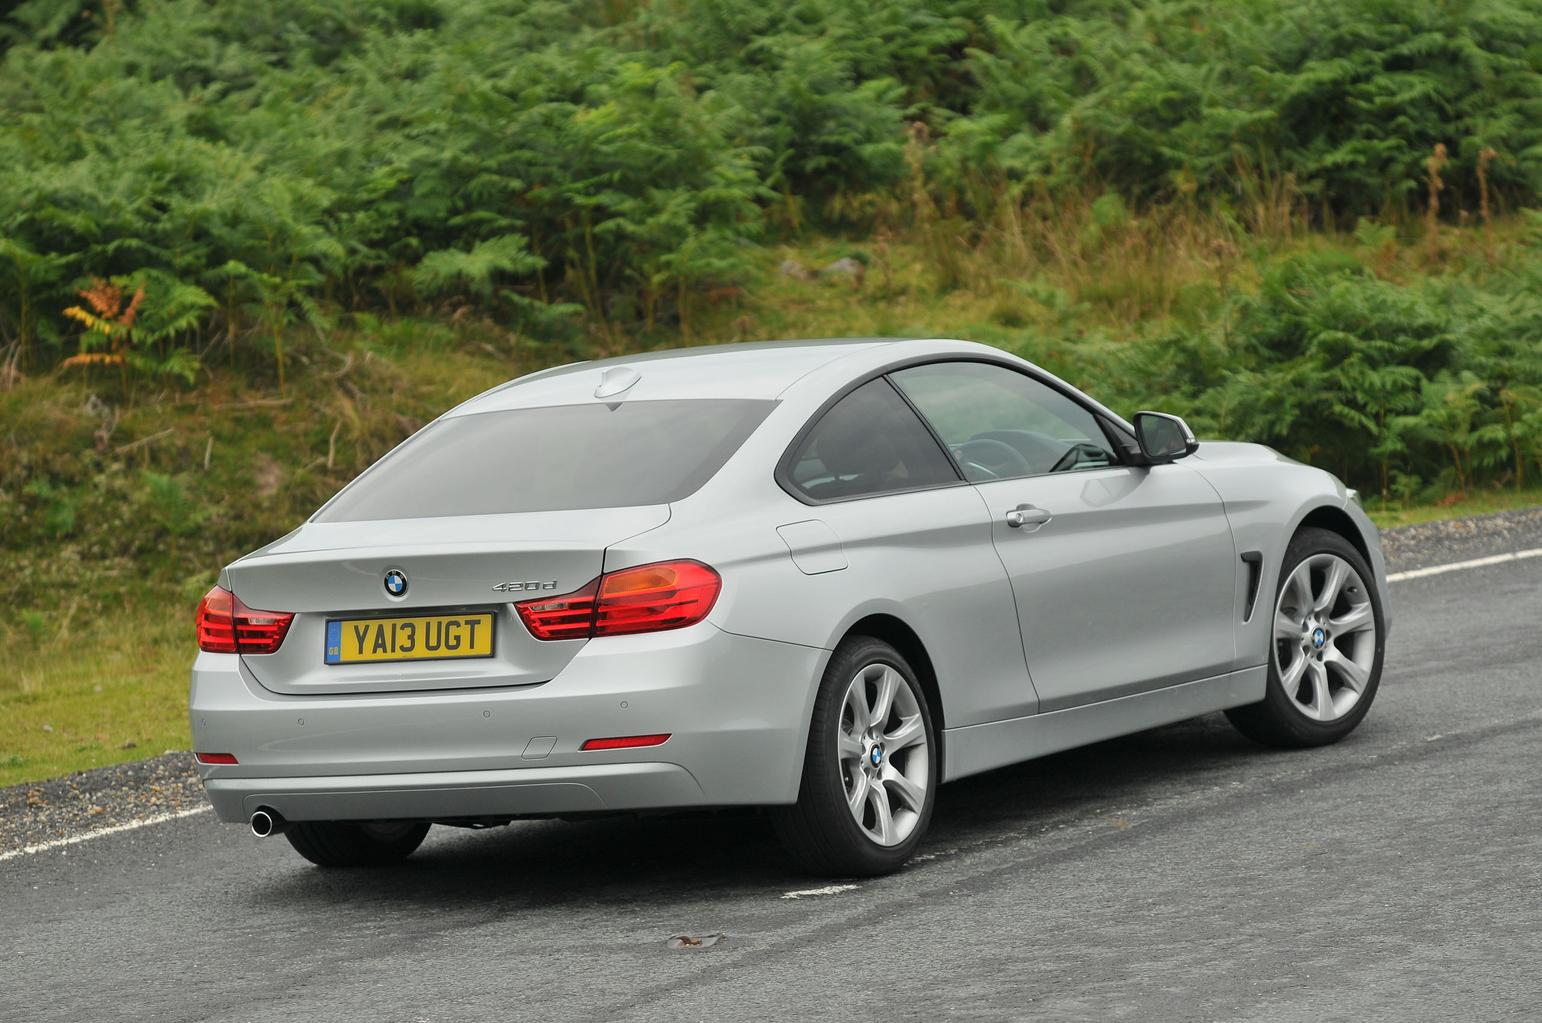 Deal of the day: BMW 4 Series Coupe